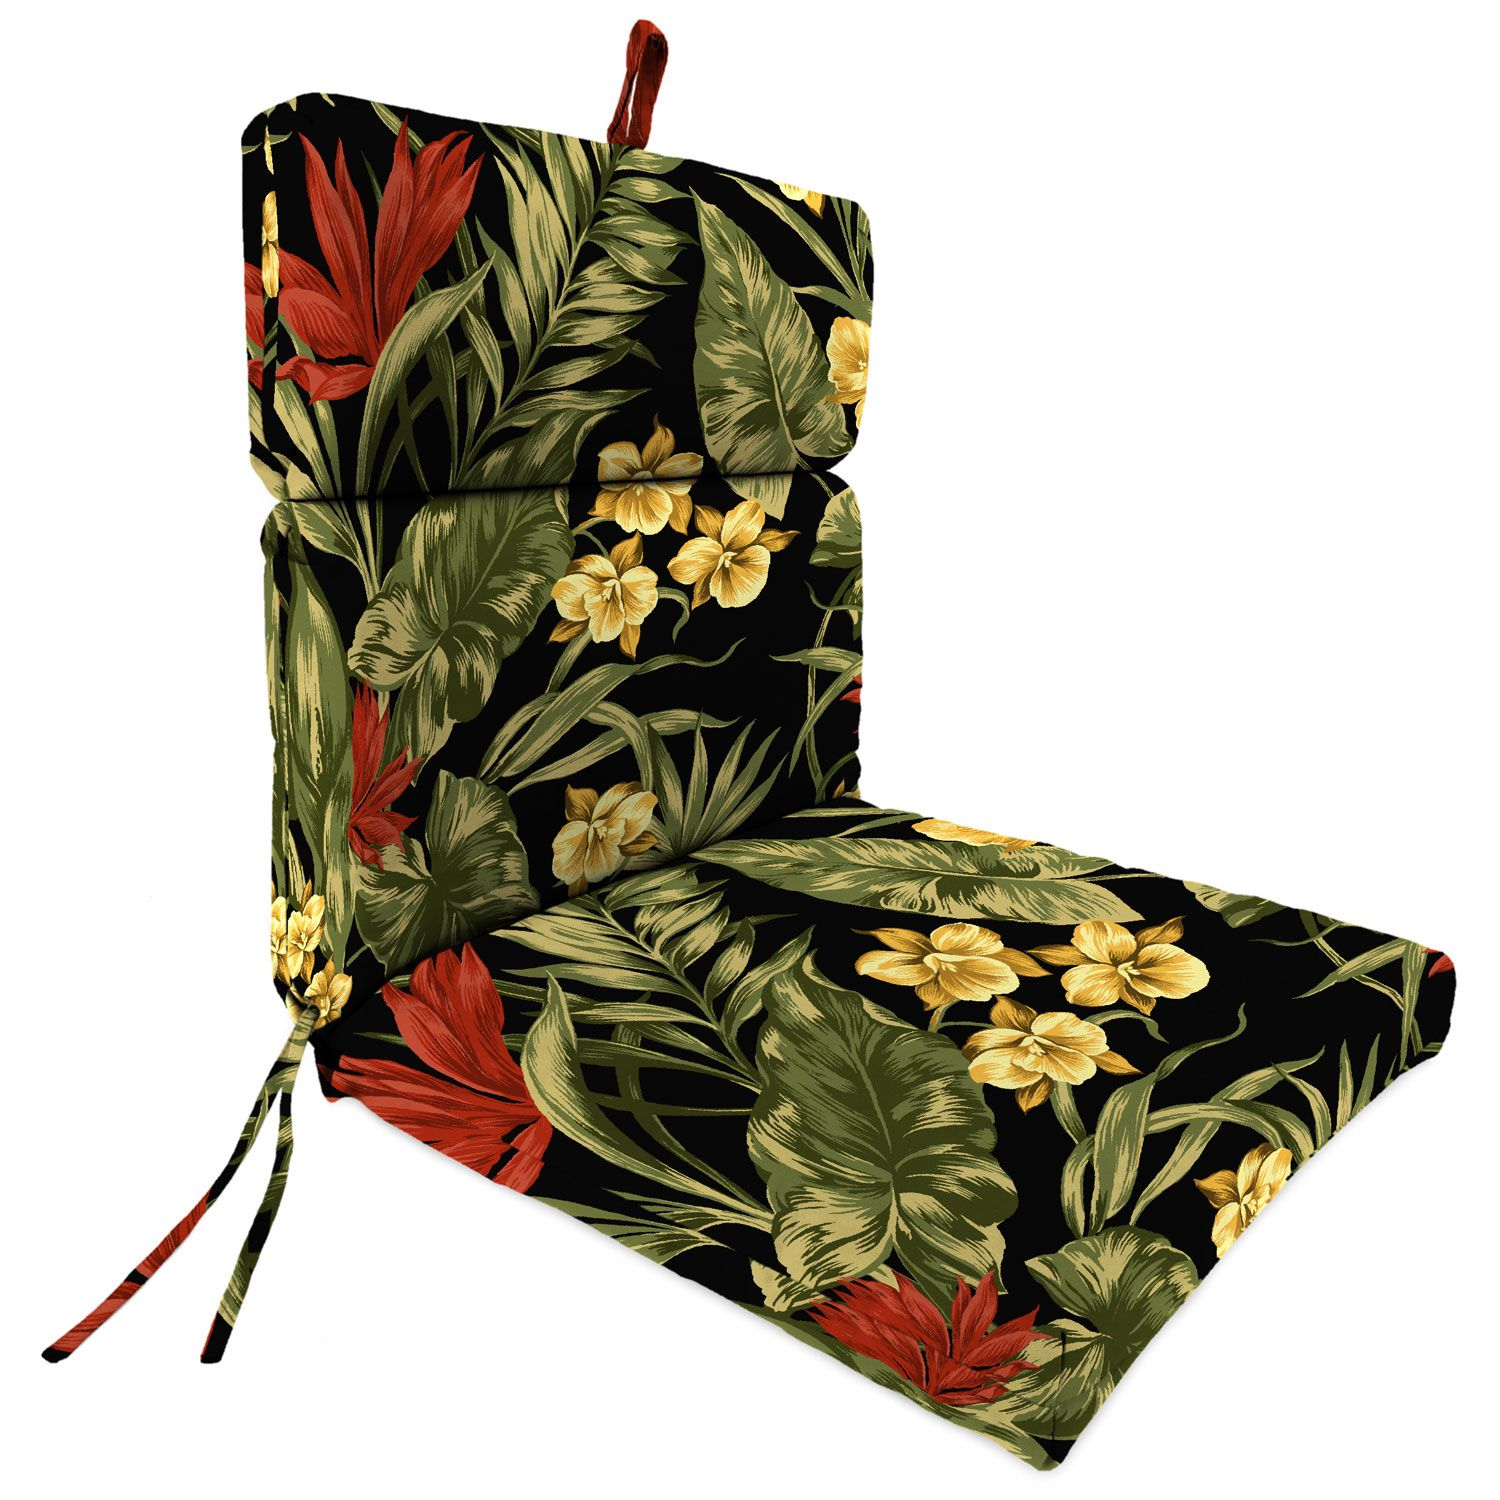 Sunset Ebony Universal Chair Cushion Jordan Manufacturing ...